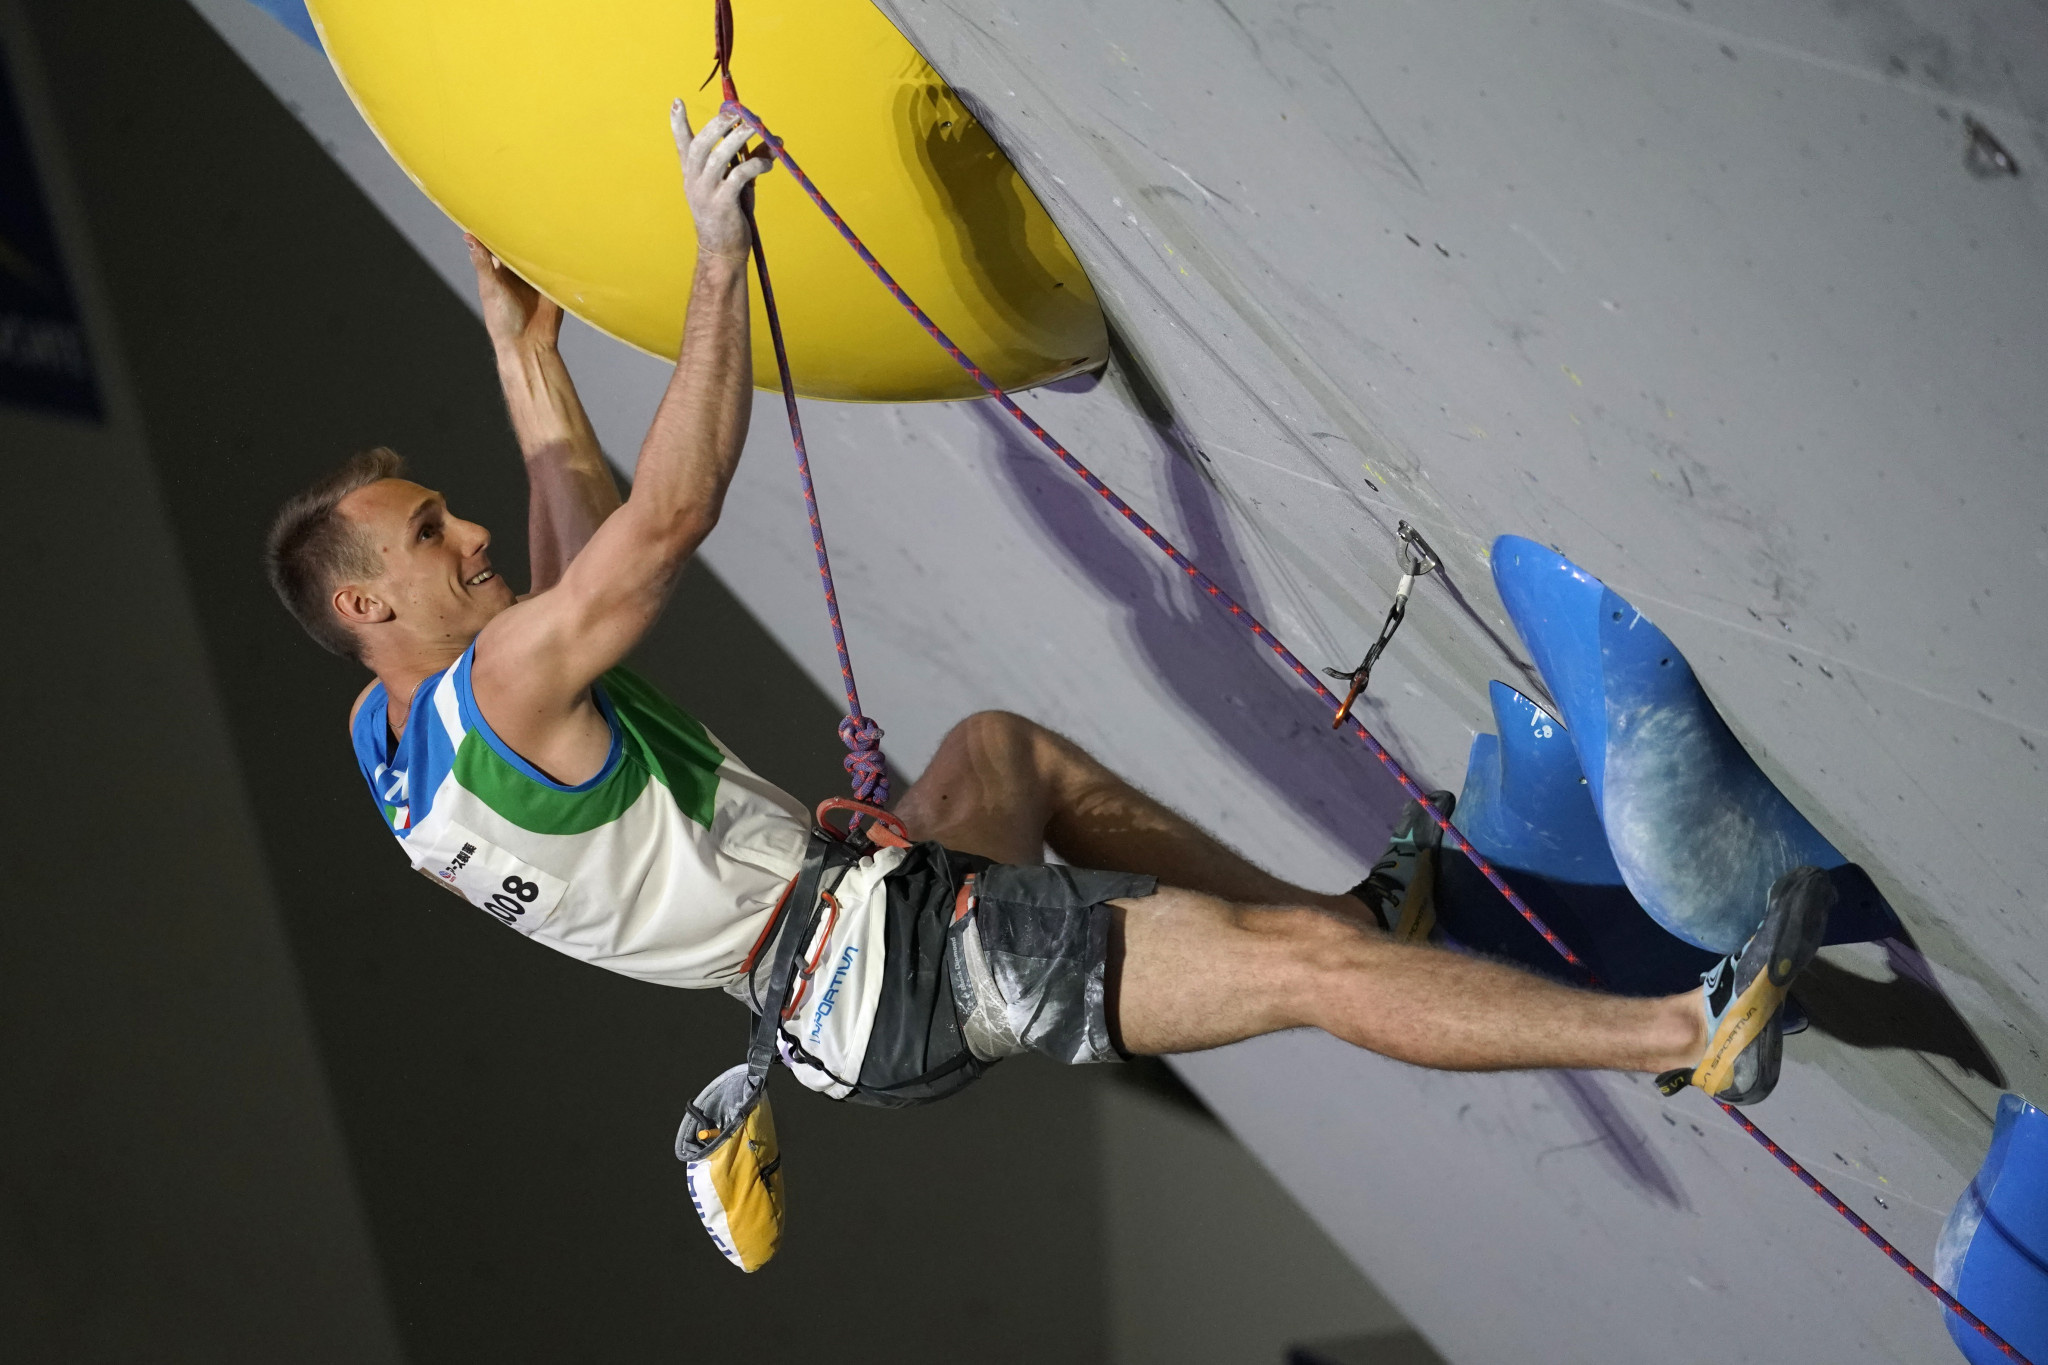 Fossali bids for IFSC Youth World Championships glory in Arco